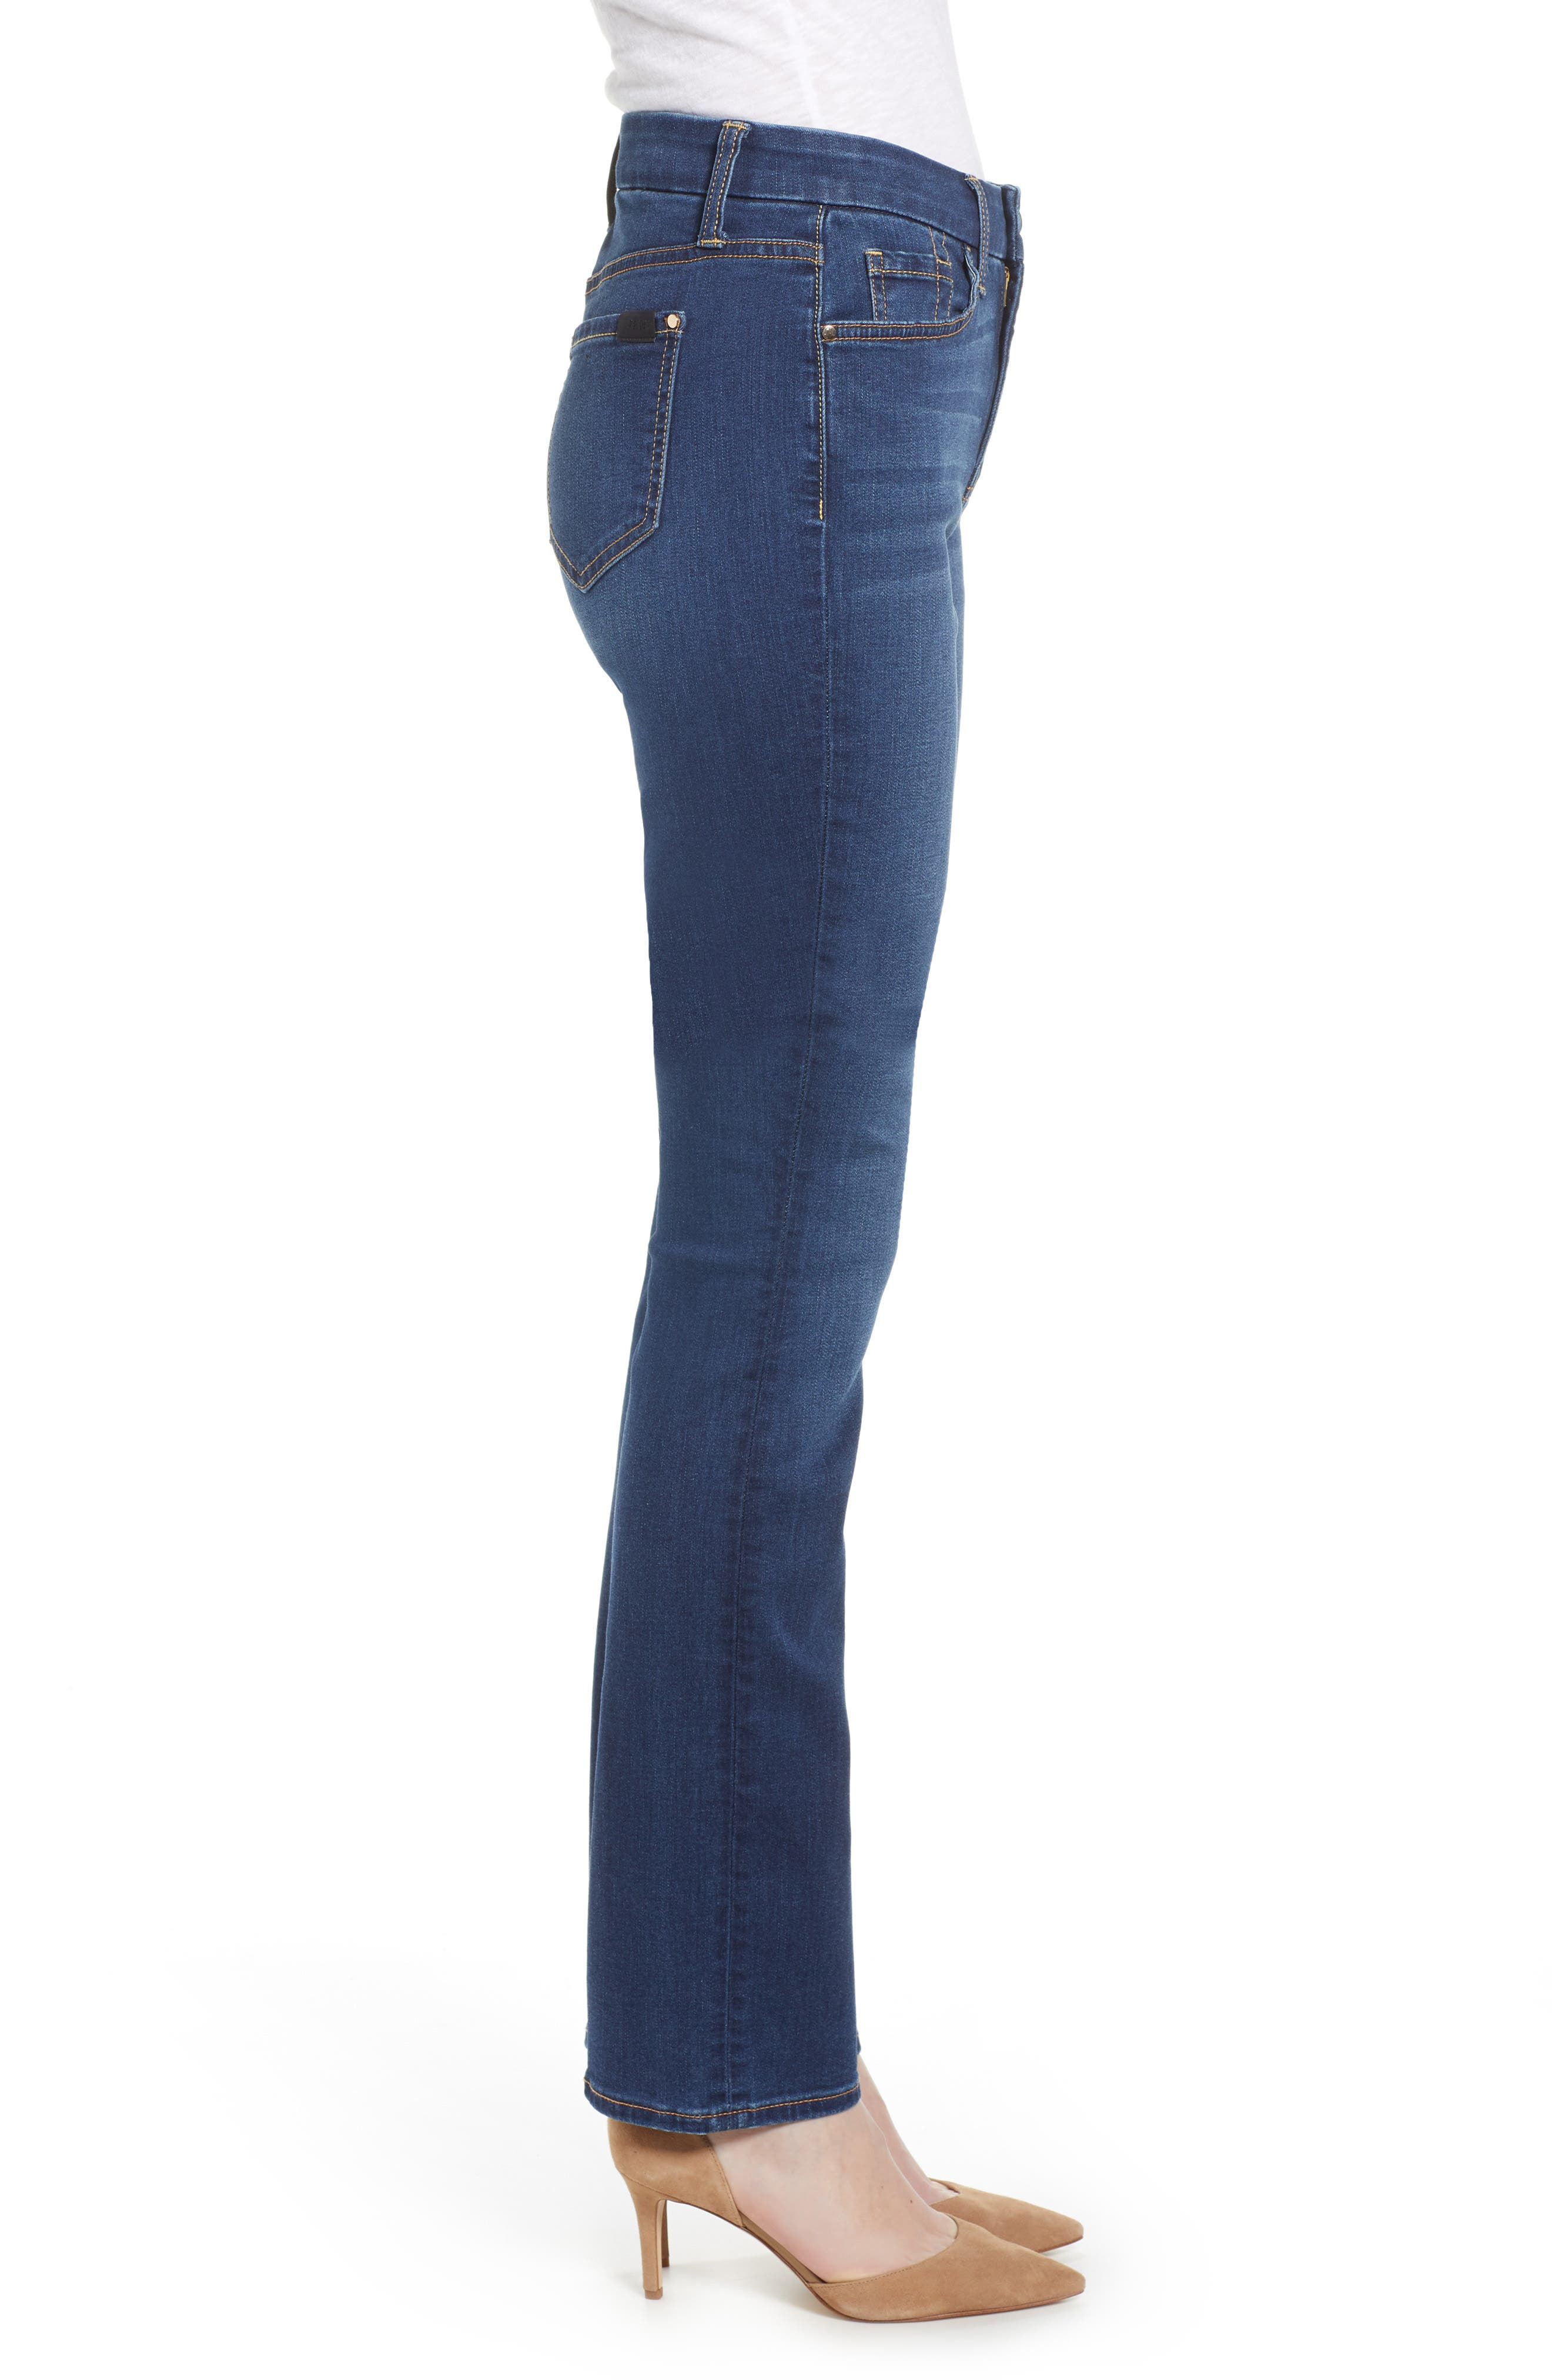 JEN7 BY 7 FOR ALL MANKIND, Slim Straight Leg Jeans, Alternate thumbnail 4, color, 404